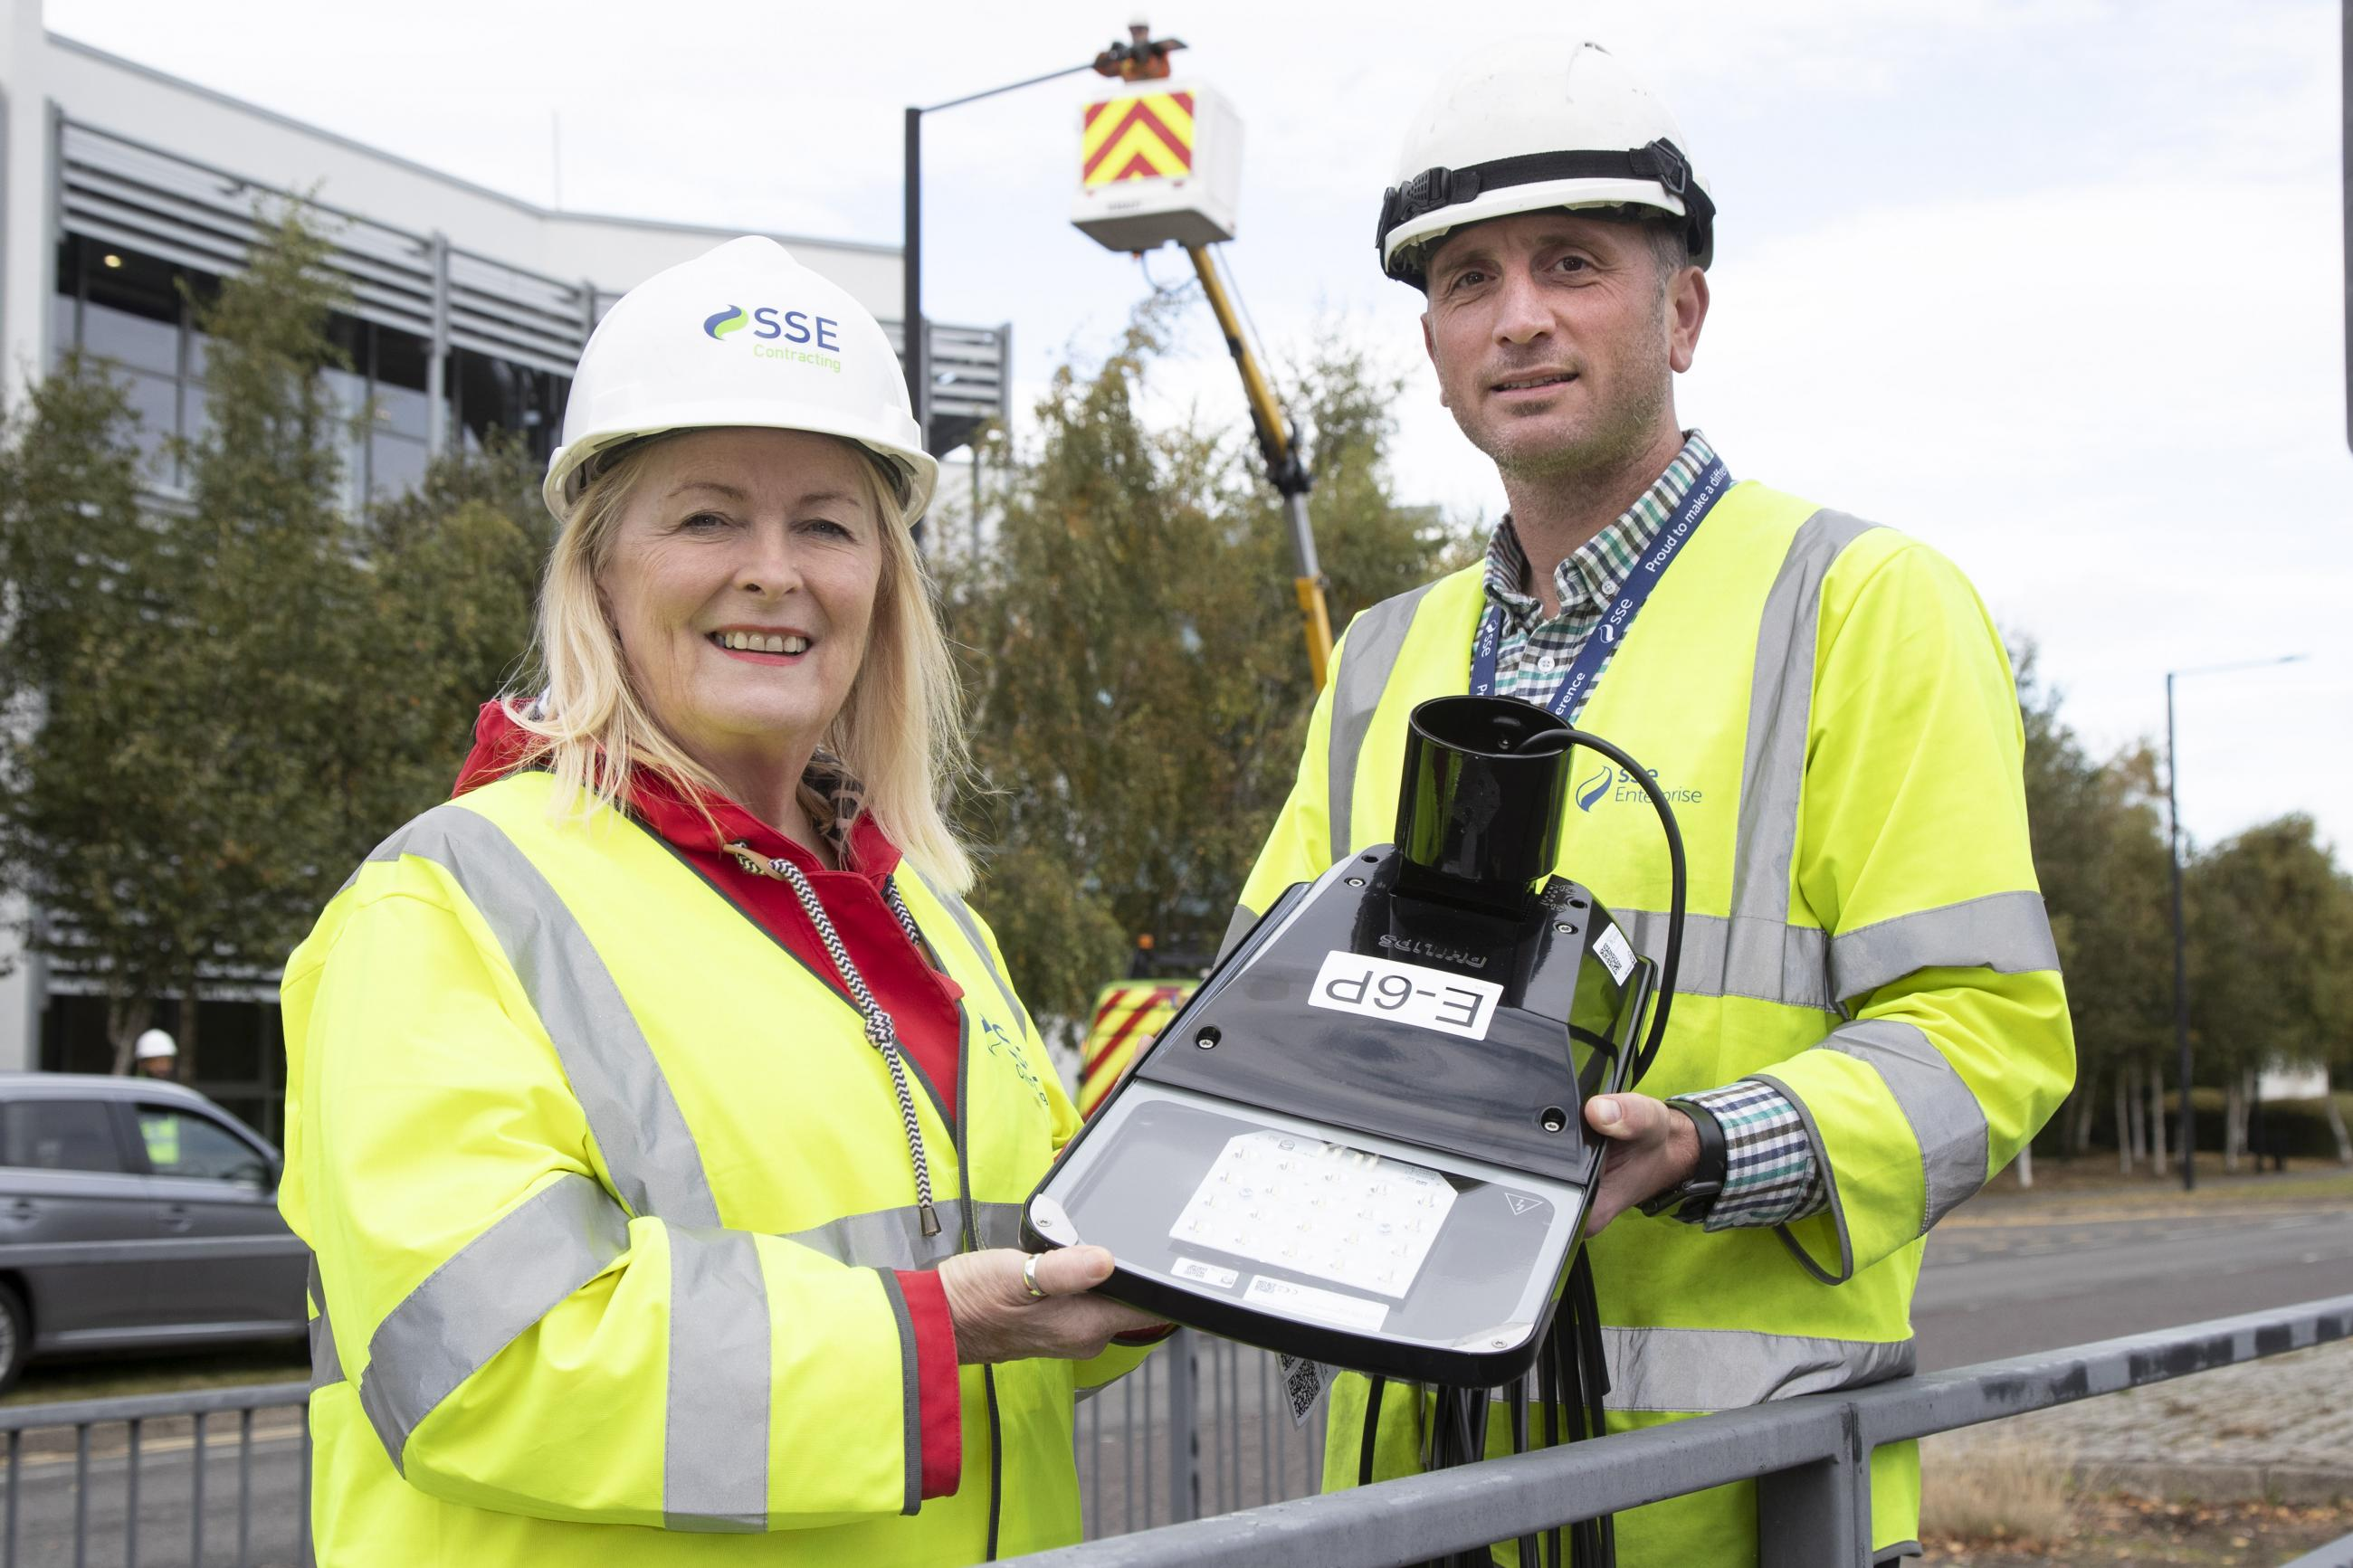 Photograph showing two people in hard hats and high vis jackets holding the lamp for a new street light.